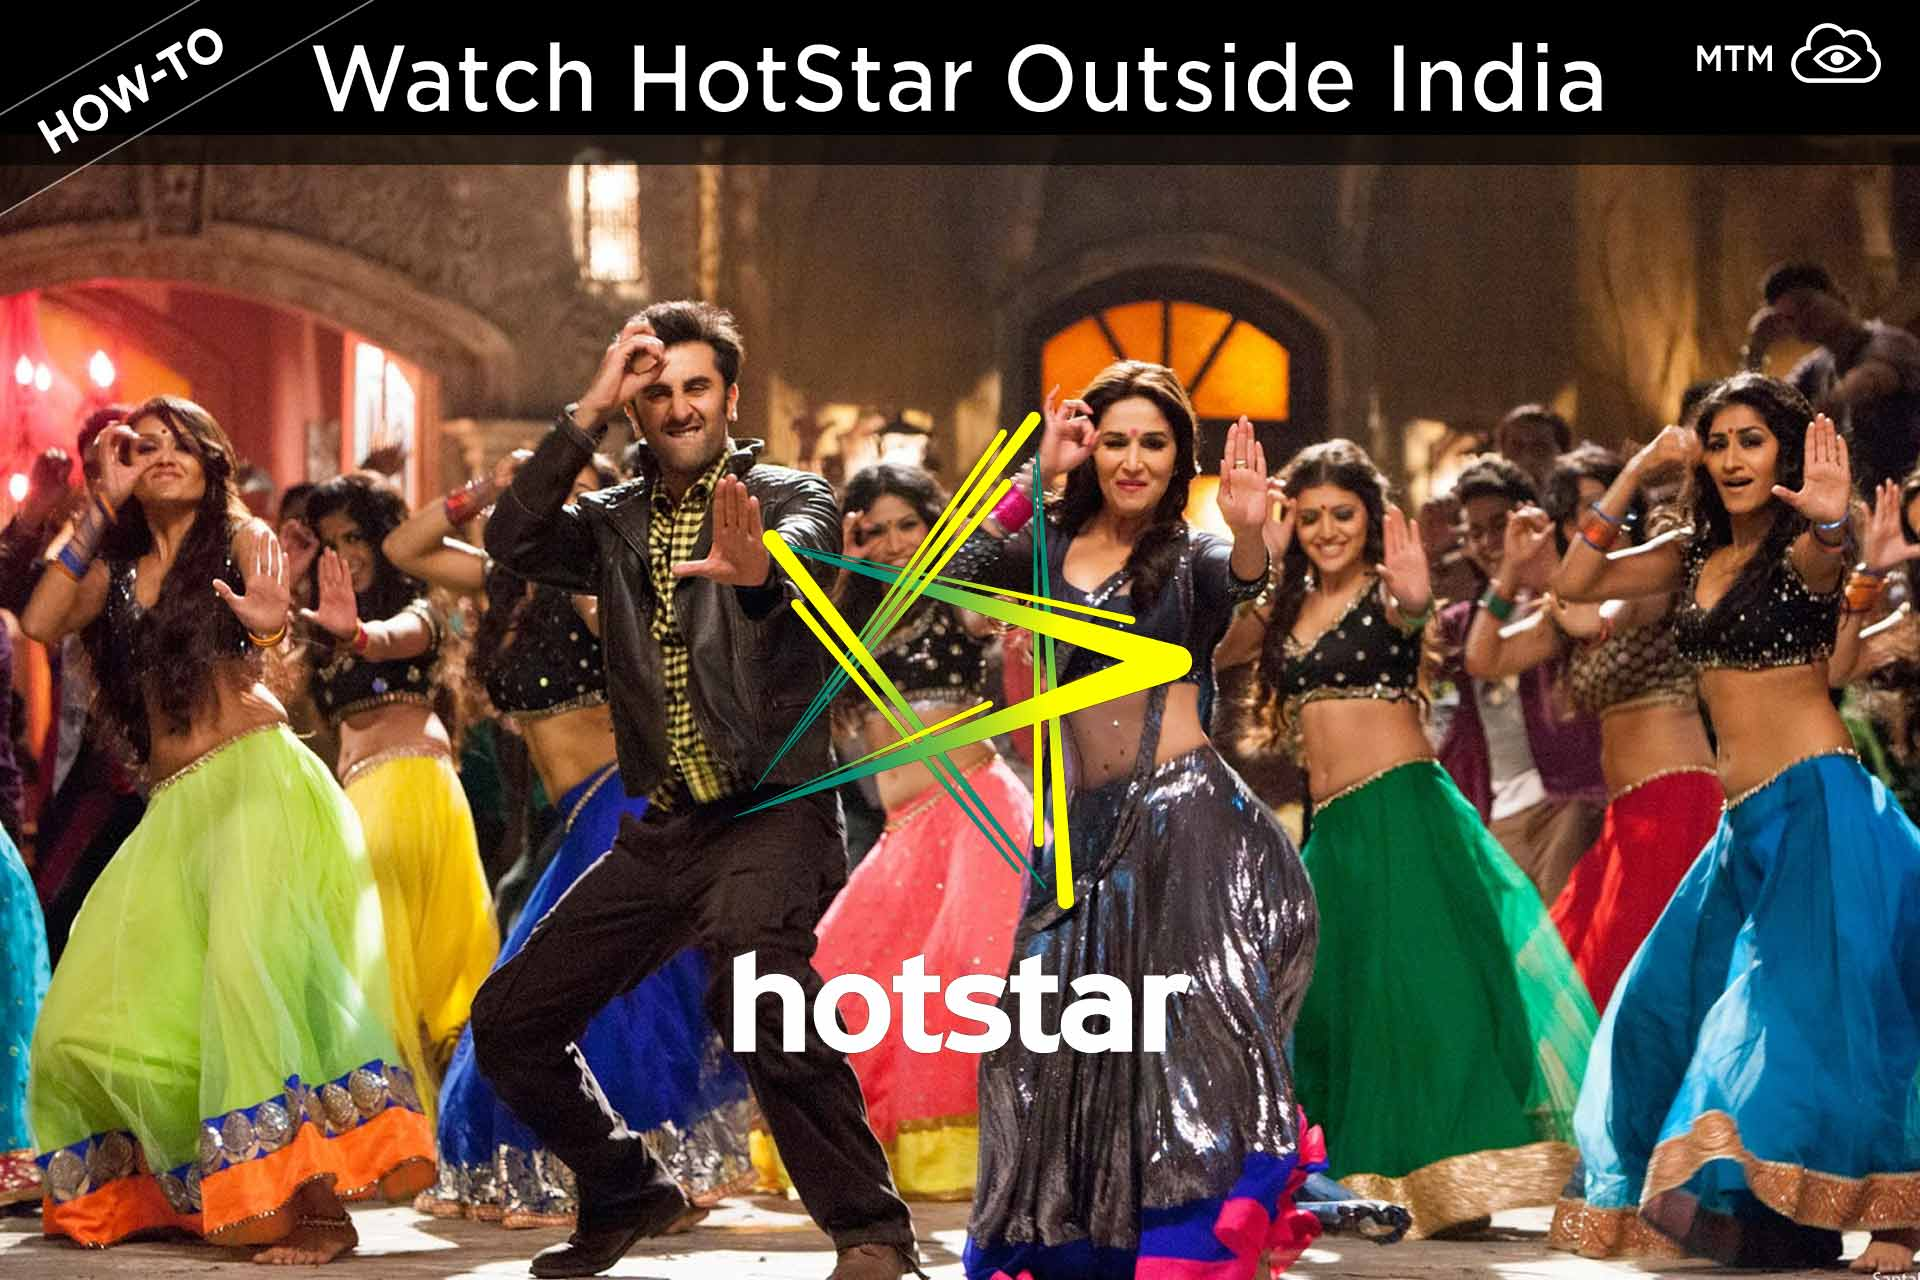 Watch HotStar Live TV, Movies & Sports Outside India